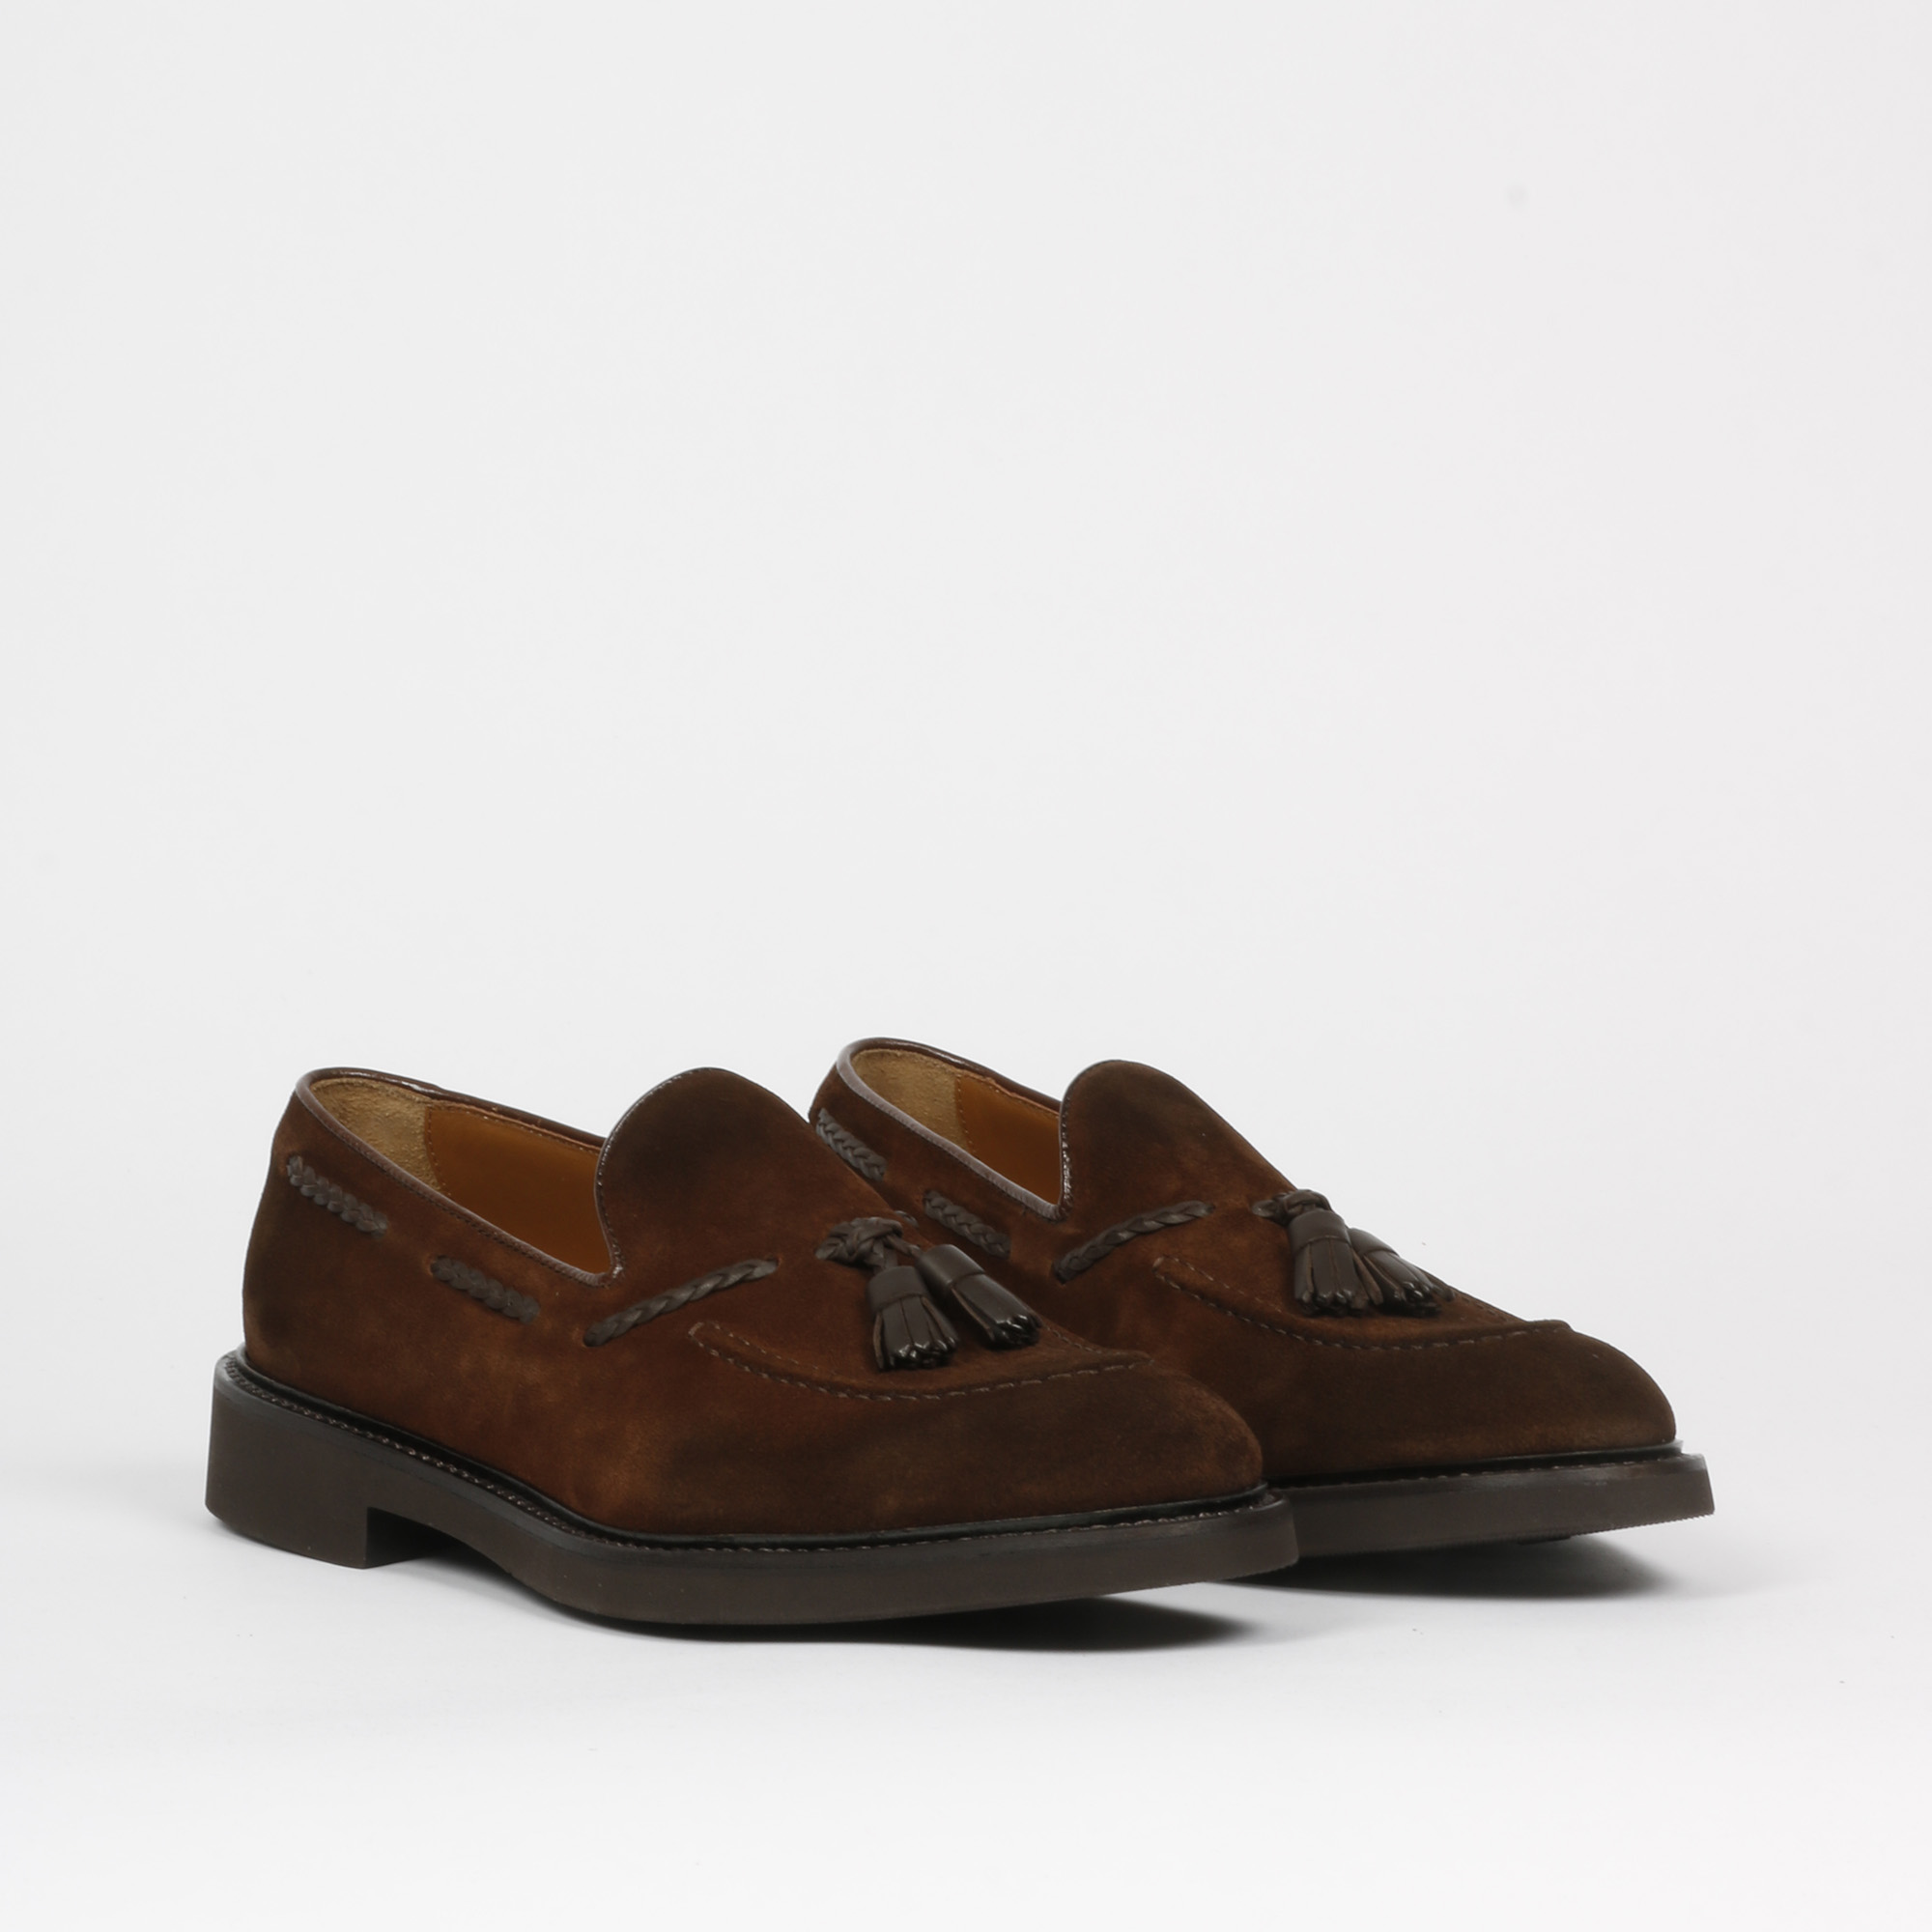 Mocassino tassel snuf - Marrone